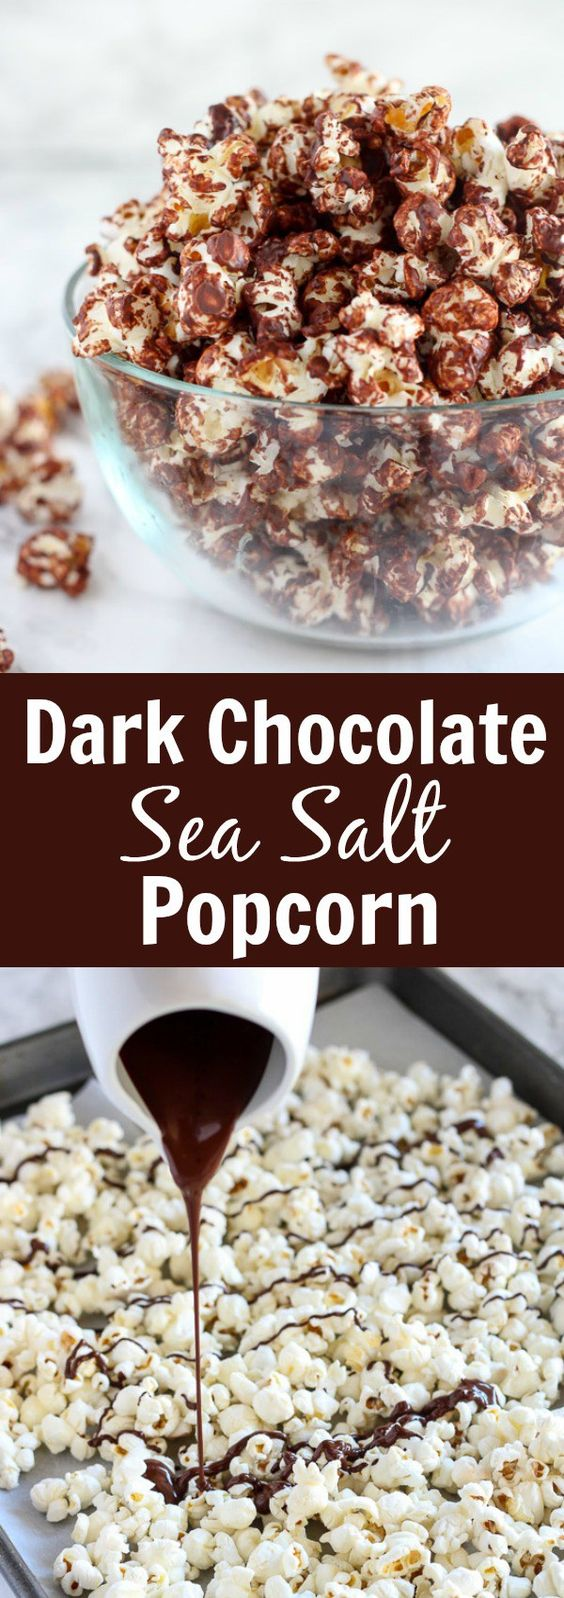 Dark Chocolate Sea Salt Popcorn - A healthy sweet and salty snack made ...